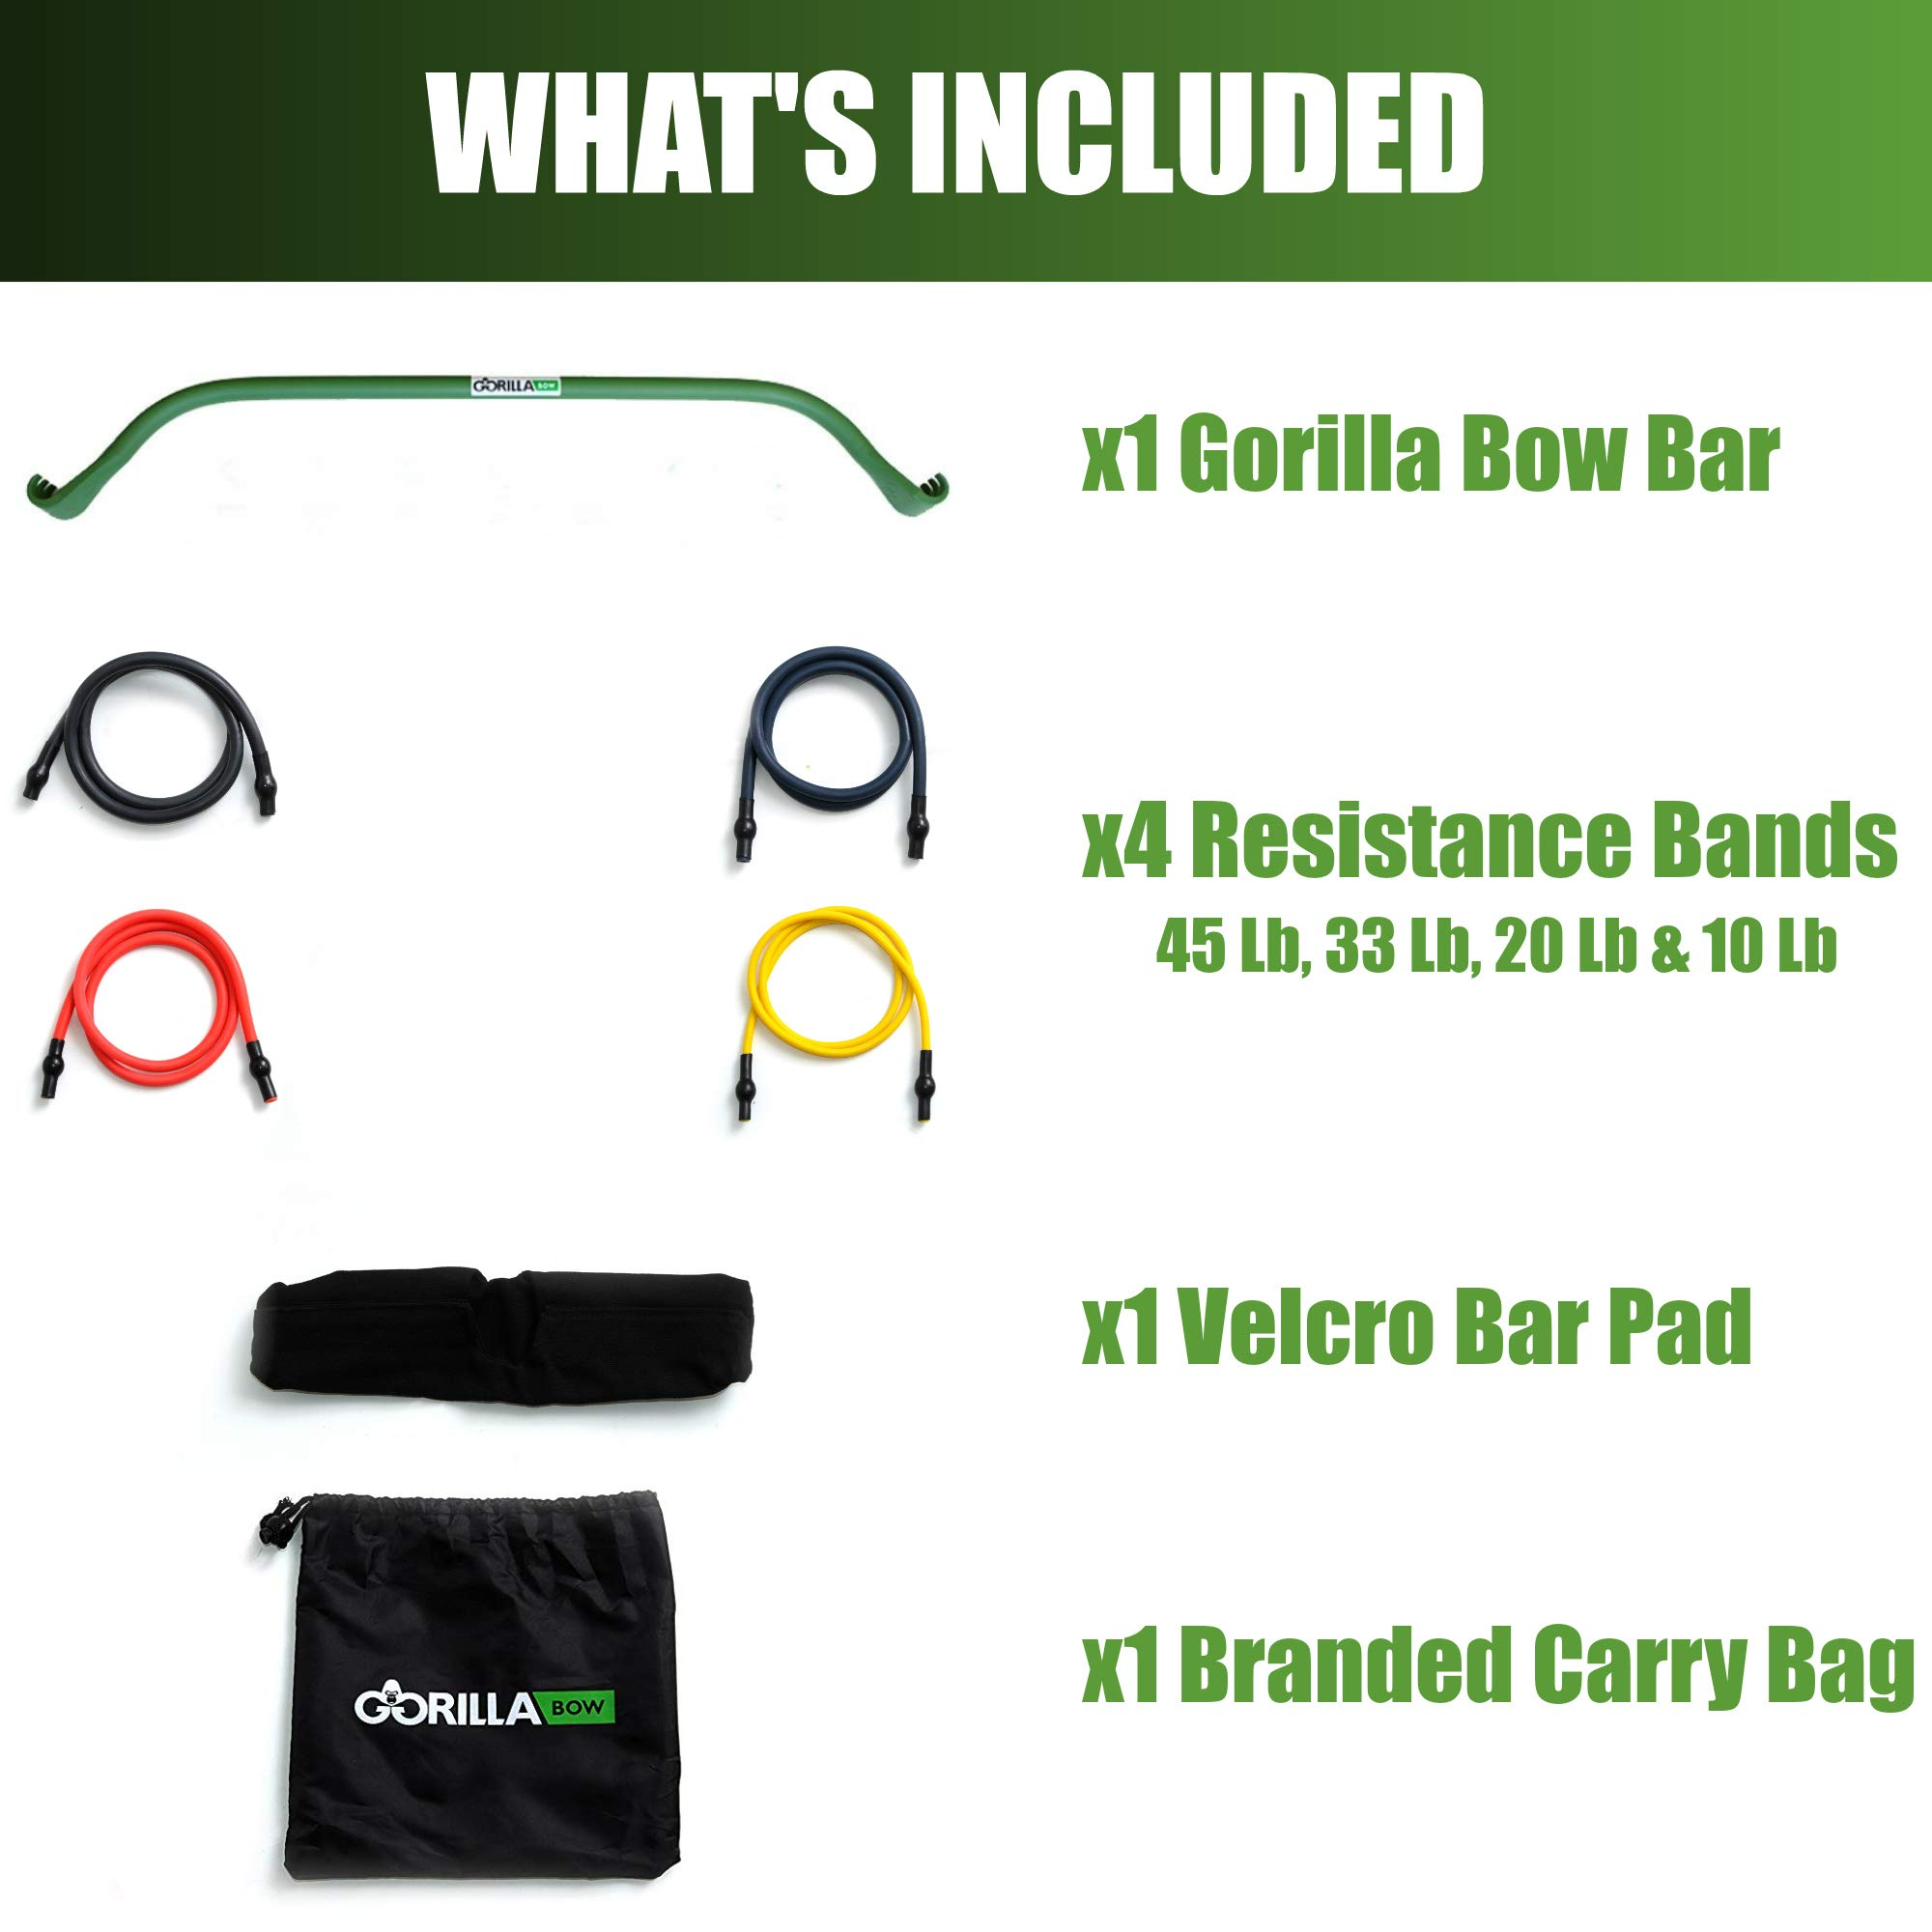 Gorilla Bow Portable Home Gym Resistance Band System | Weightlifting & HIIT Interval Training Kit | Full Body Workout Equipment (Green) by Gorilla Fitness (Image #3)